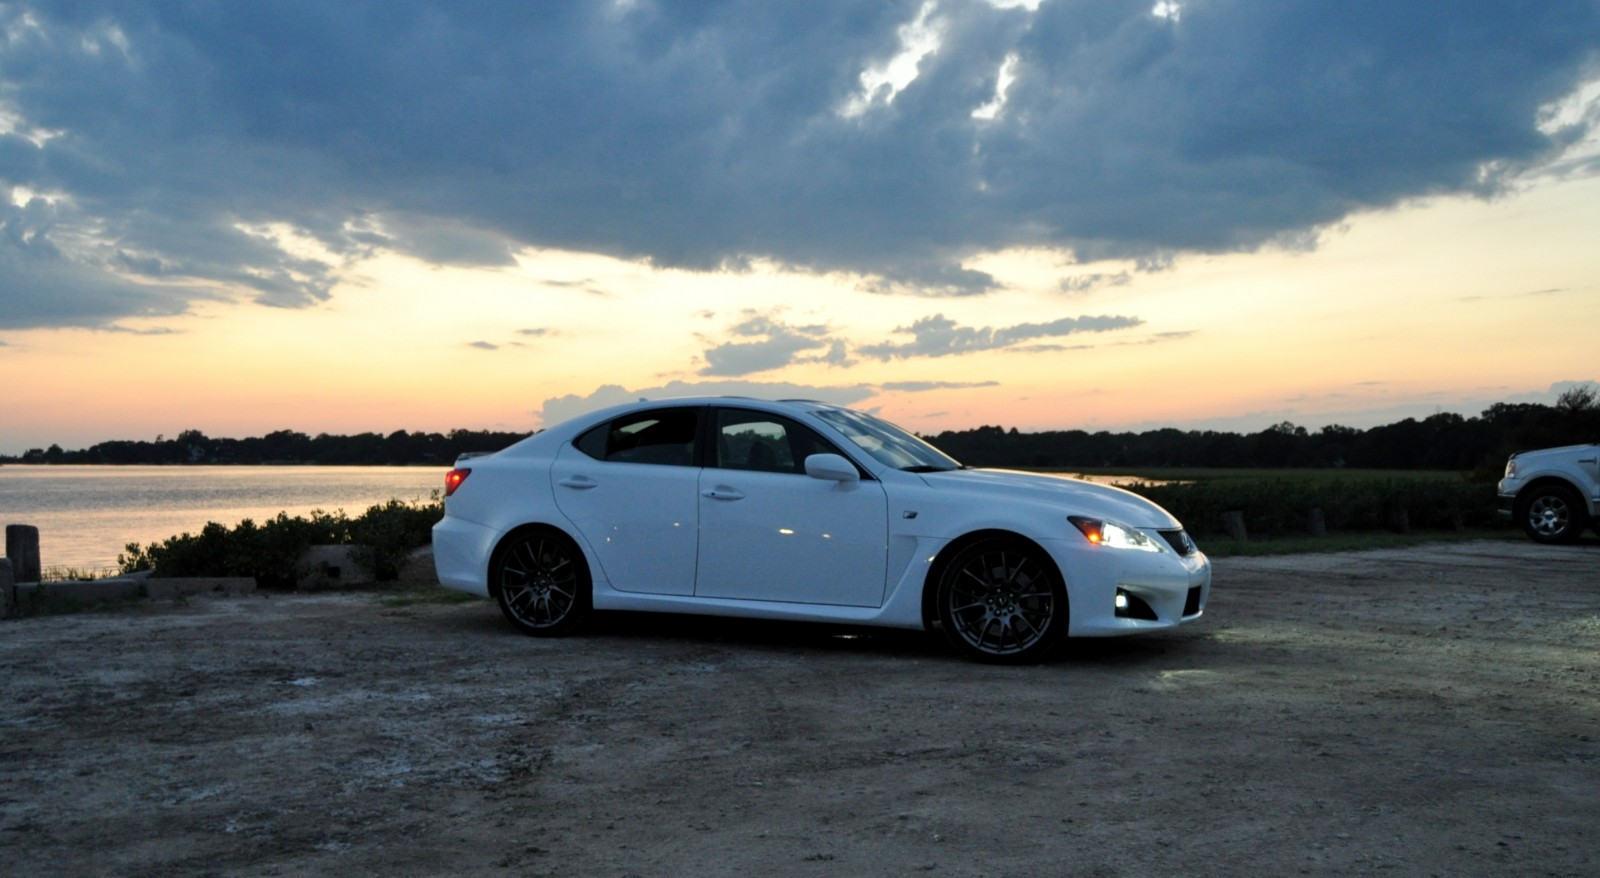 2014 Lexus IS-F Looking Sublime in Sunset Photo Shoot 6